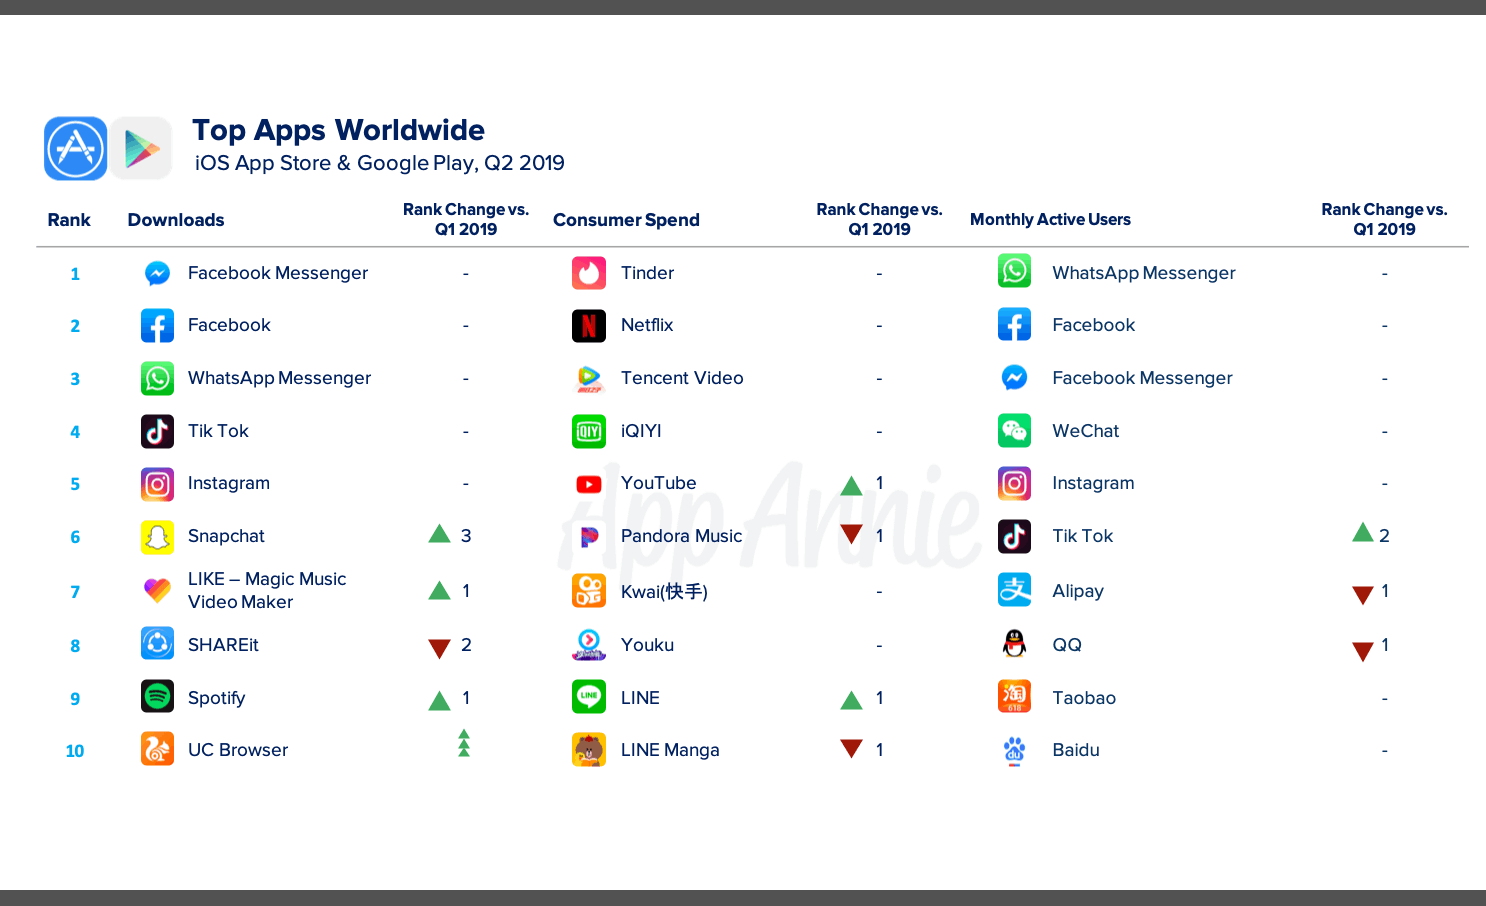 Messenger and Facebook rank highest in applications in the